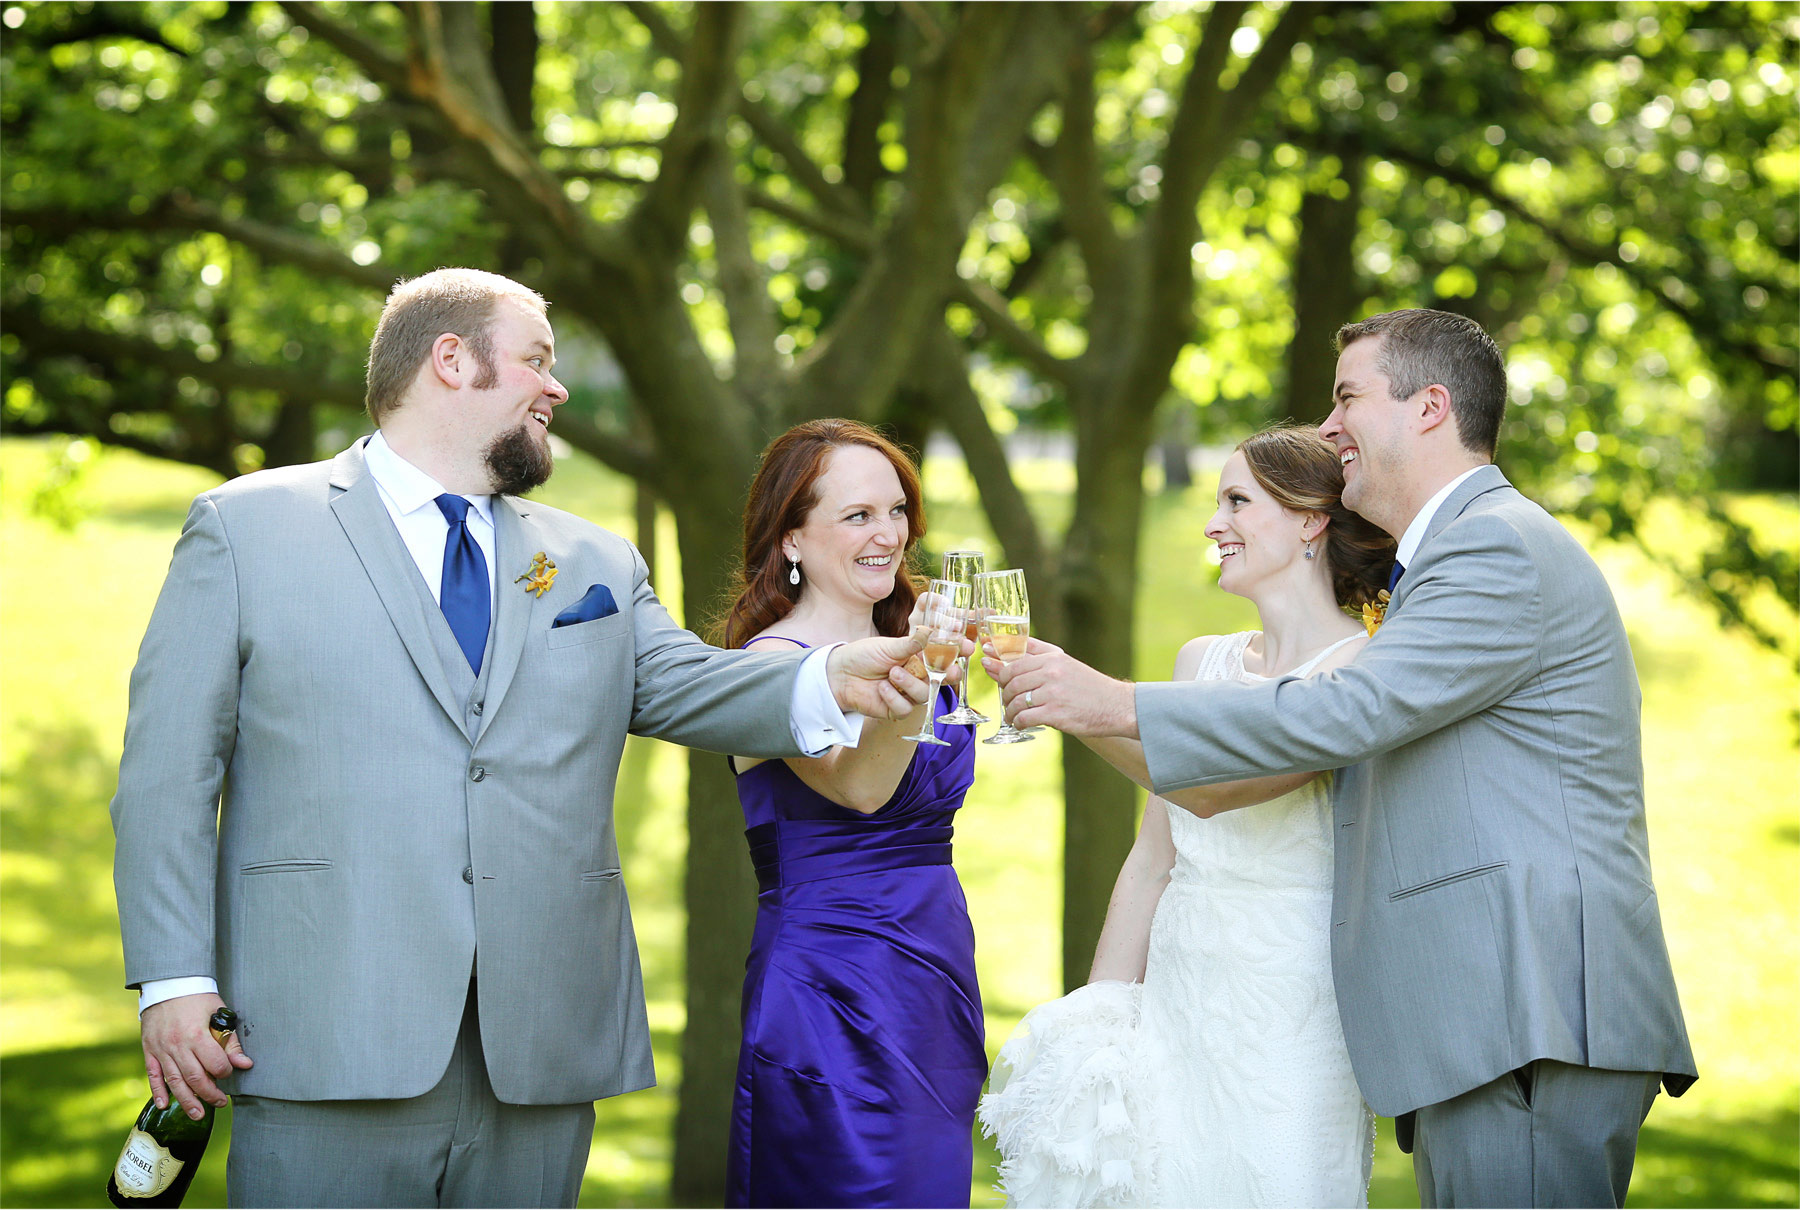 20-Minneapolis-Minnesota-Wedding-Photographer-by-Andrew-Vick-Photography-Summer-Bride-Groom-Bridesmaid-Groomsmen-Bridal-Party-Celebration-Champagne-Stephanie-and-Robert.jpg